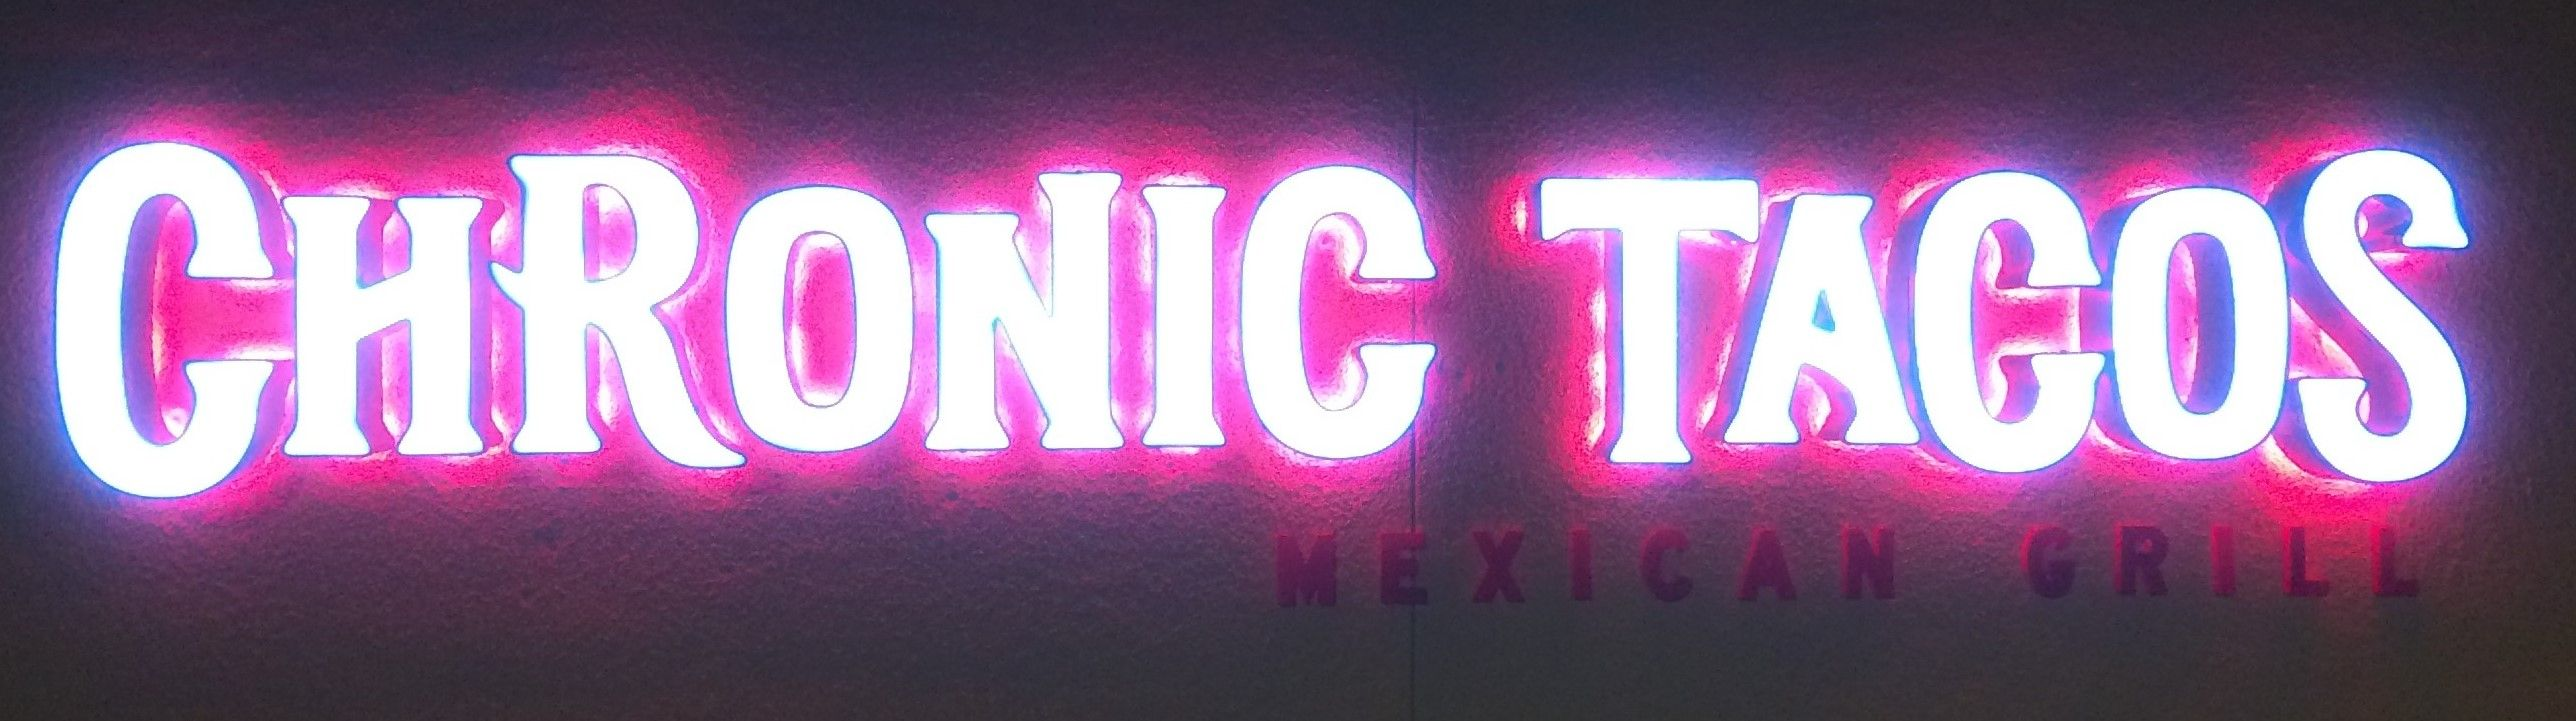 These are compound channel letters that have white LEDs to